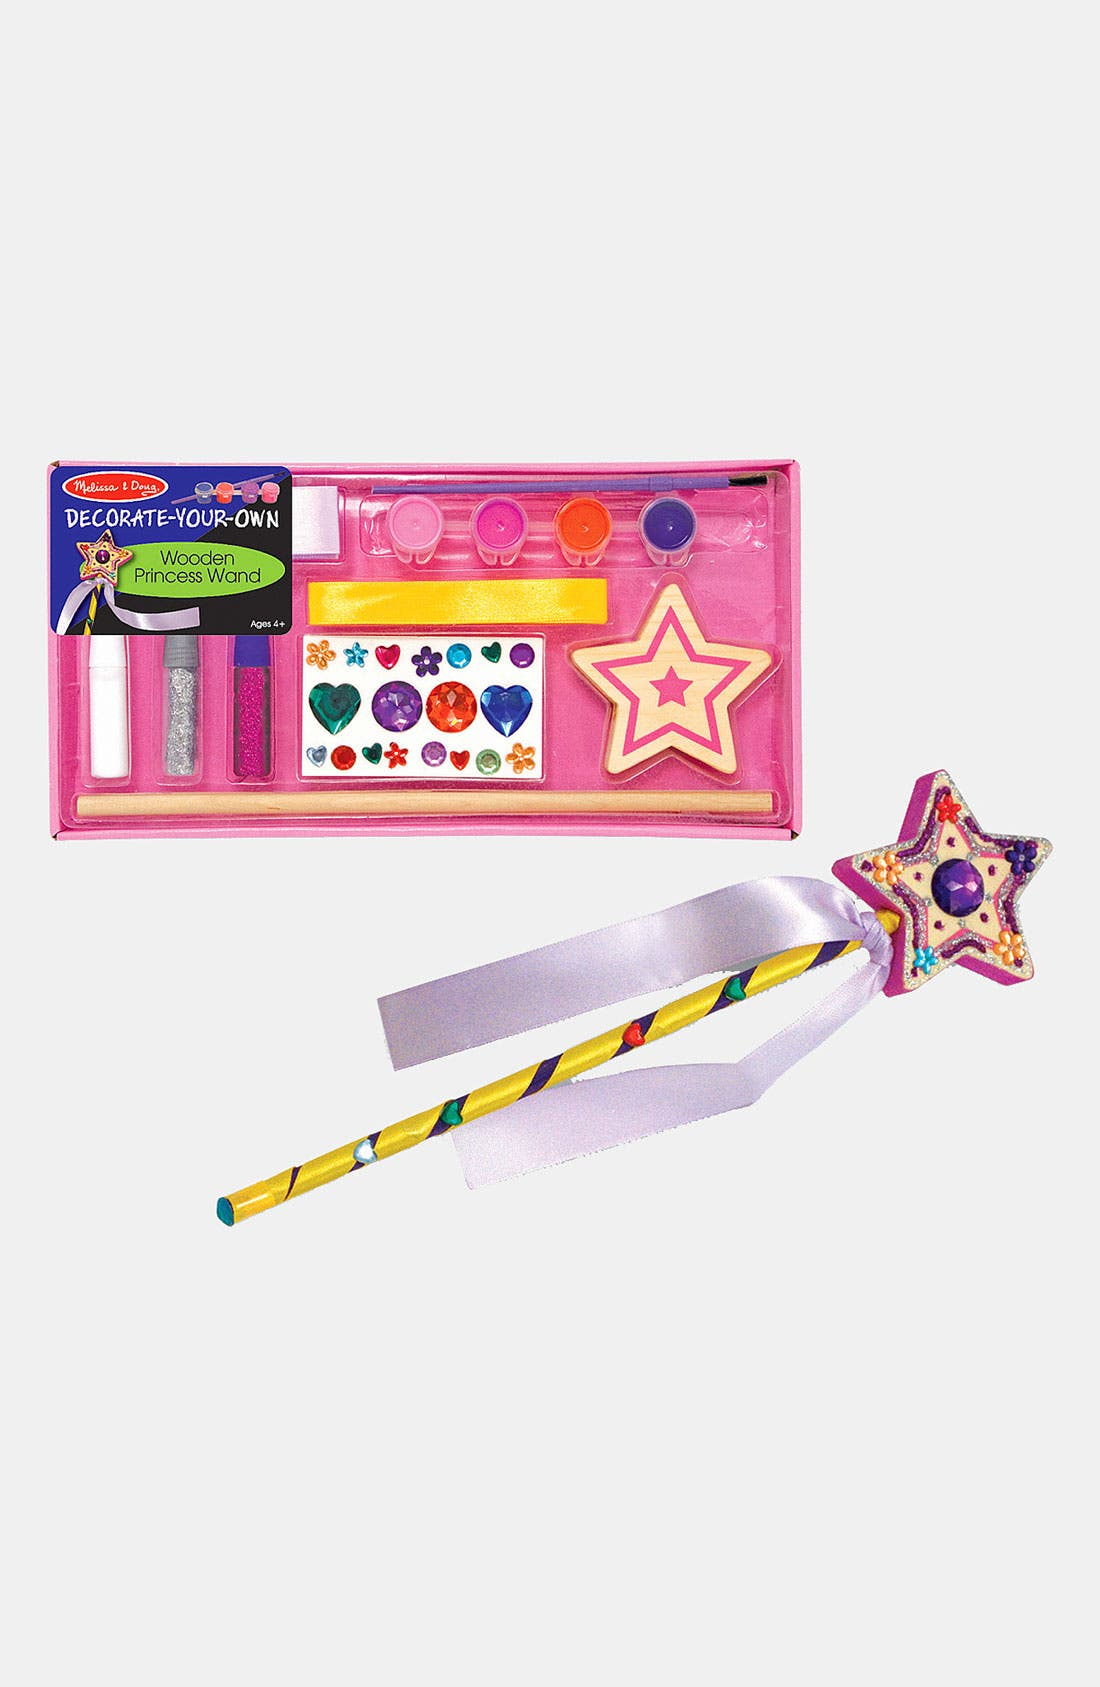 Main Image - Melissa & Doug 'Decorate-Your-Own' Wooden Princess Wand